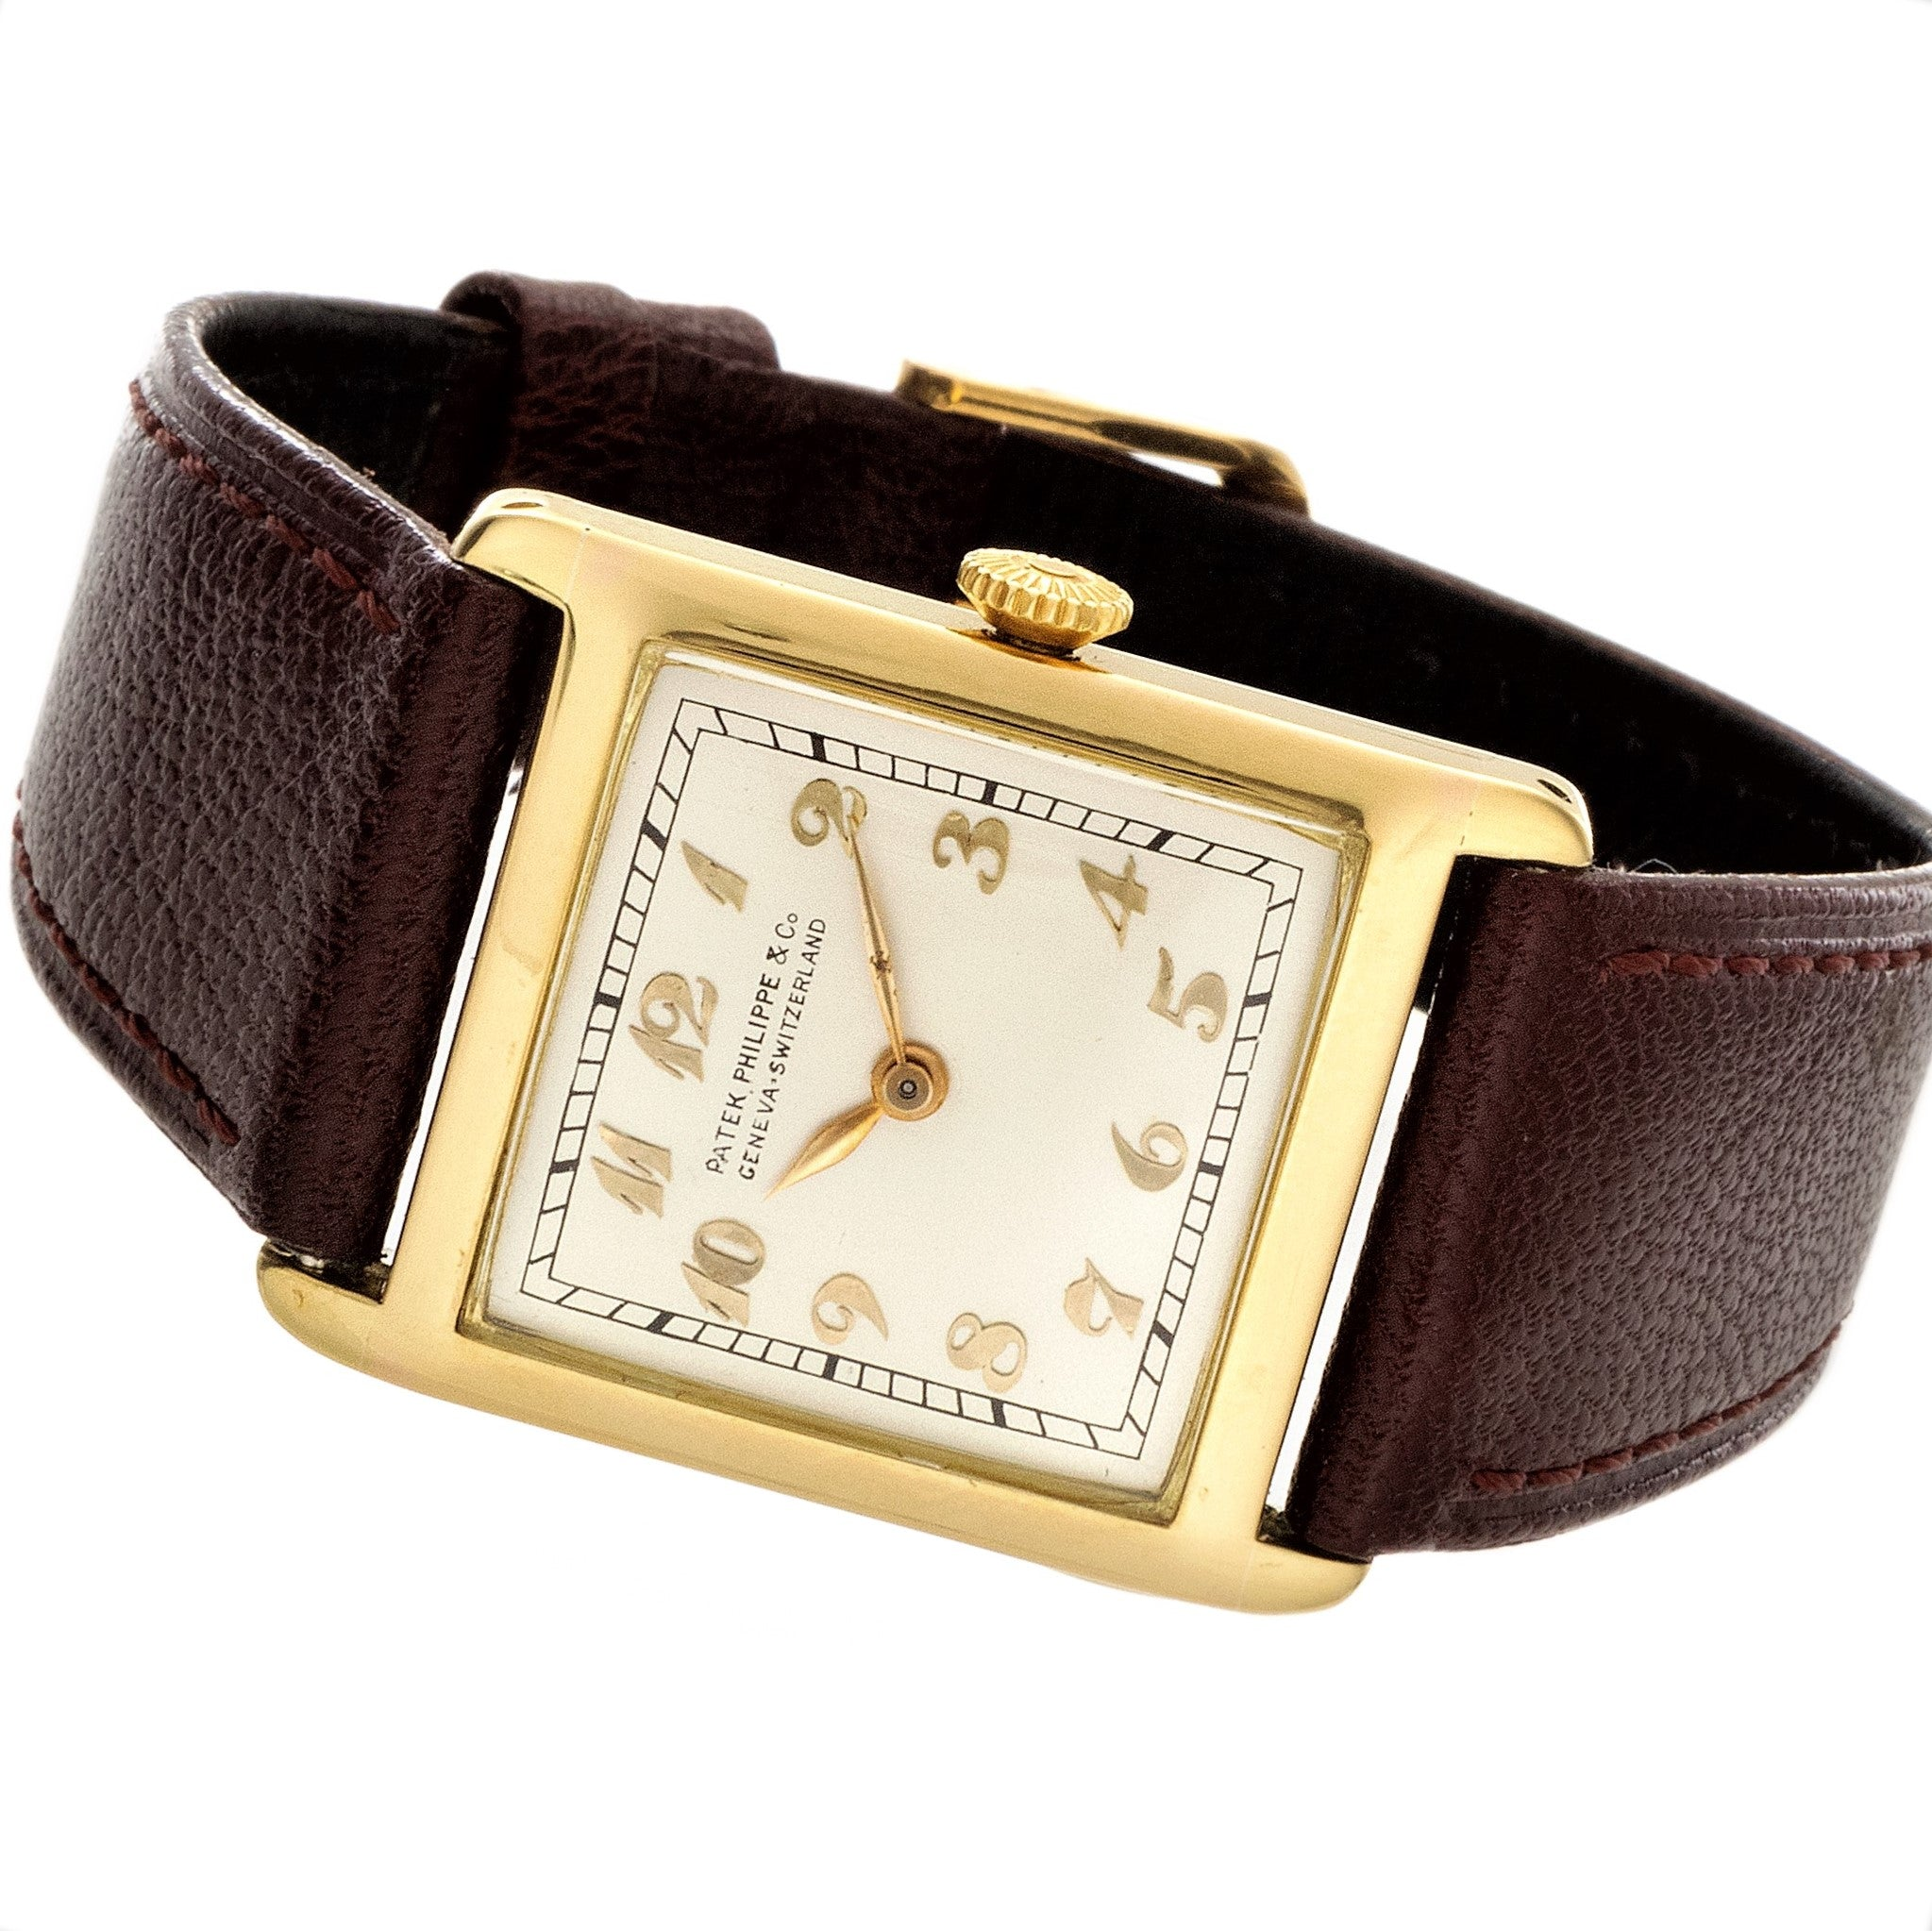 Patek Philippe Early Yellow Gold Art Deco Square Tank Watch Circa 1912